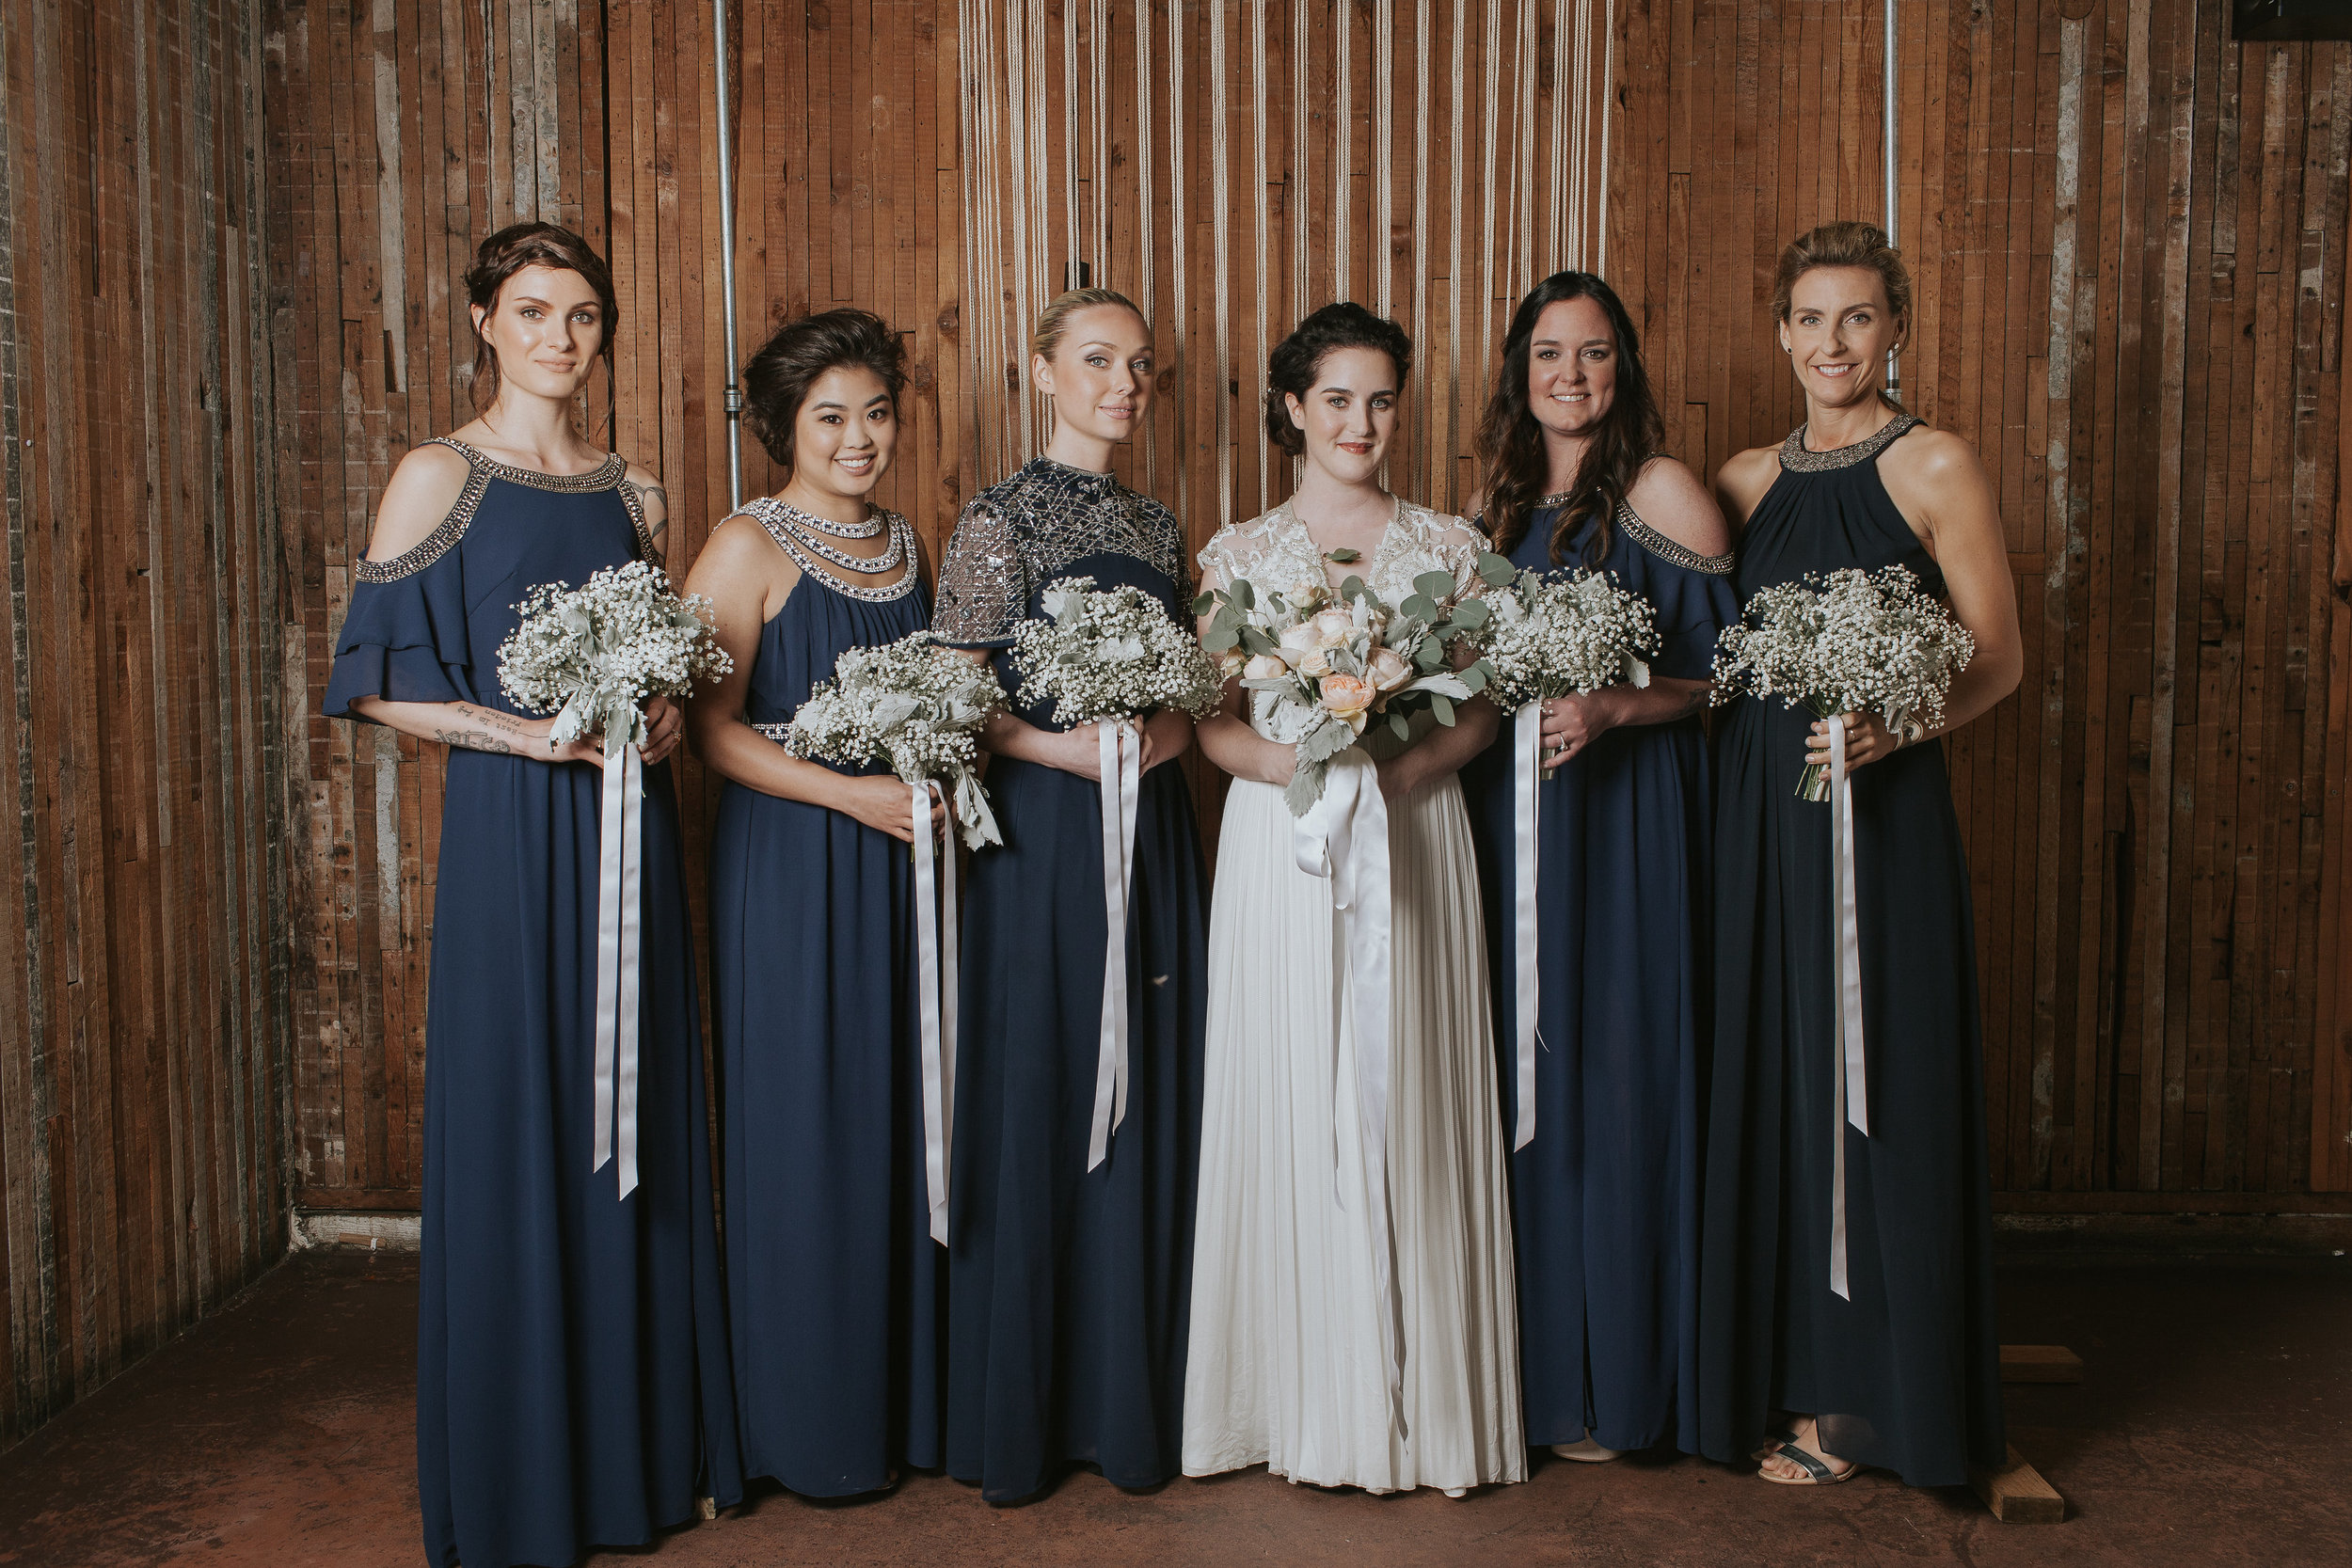 Bridalbliss.com | Seattle Wedding | Washington Event Coordination and Design | Jaquelyn Portolese Photography